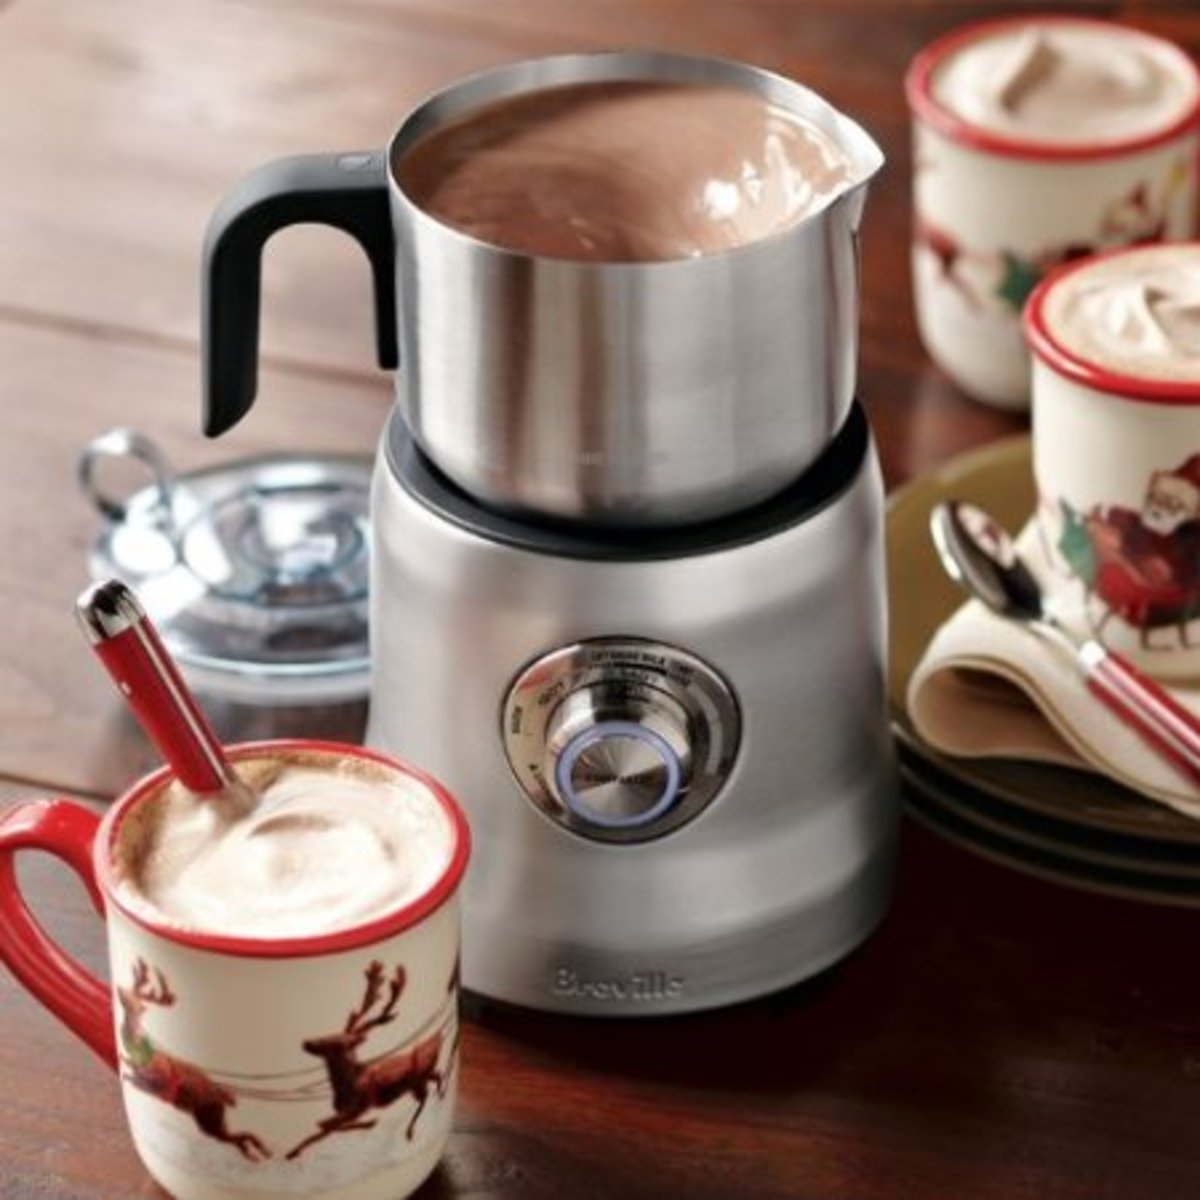 Best Hot Chocolate Maker for Home Use